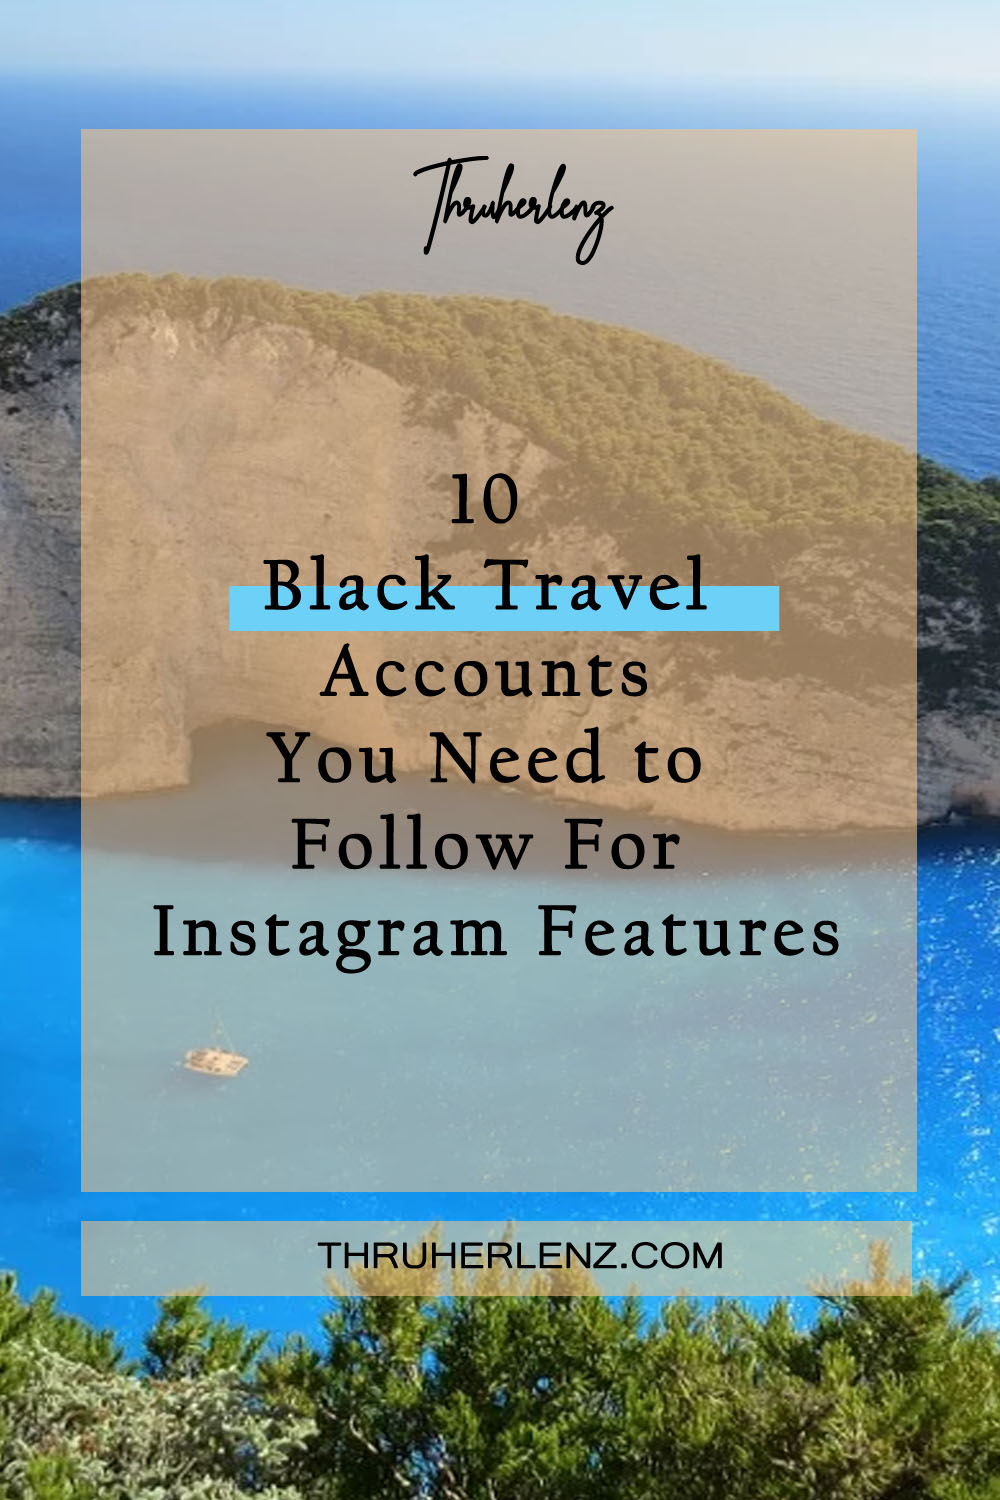 10 Black Travel Accounts You Need to Follow for Instagram Features